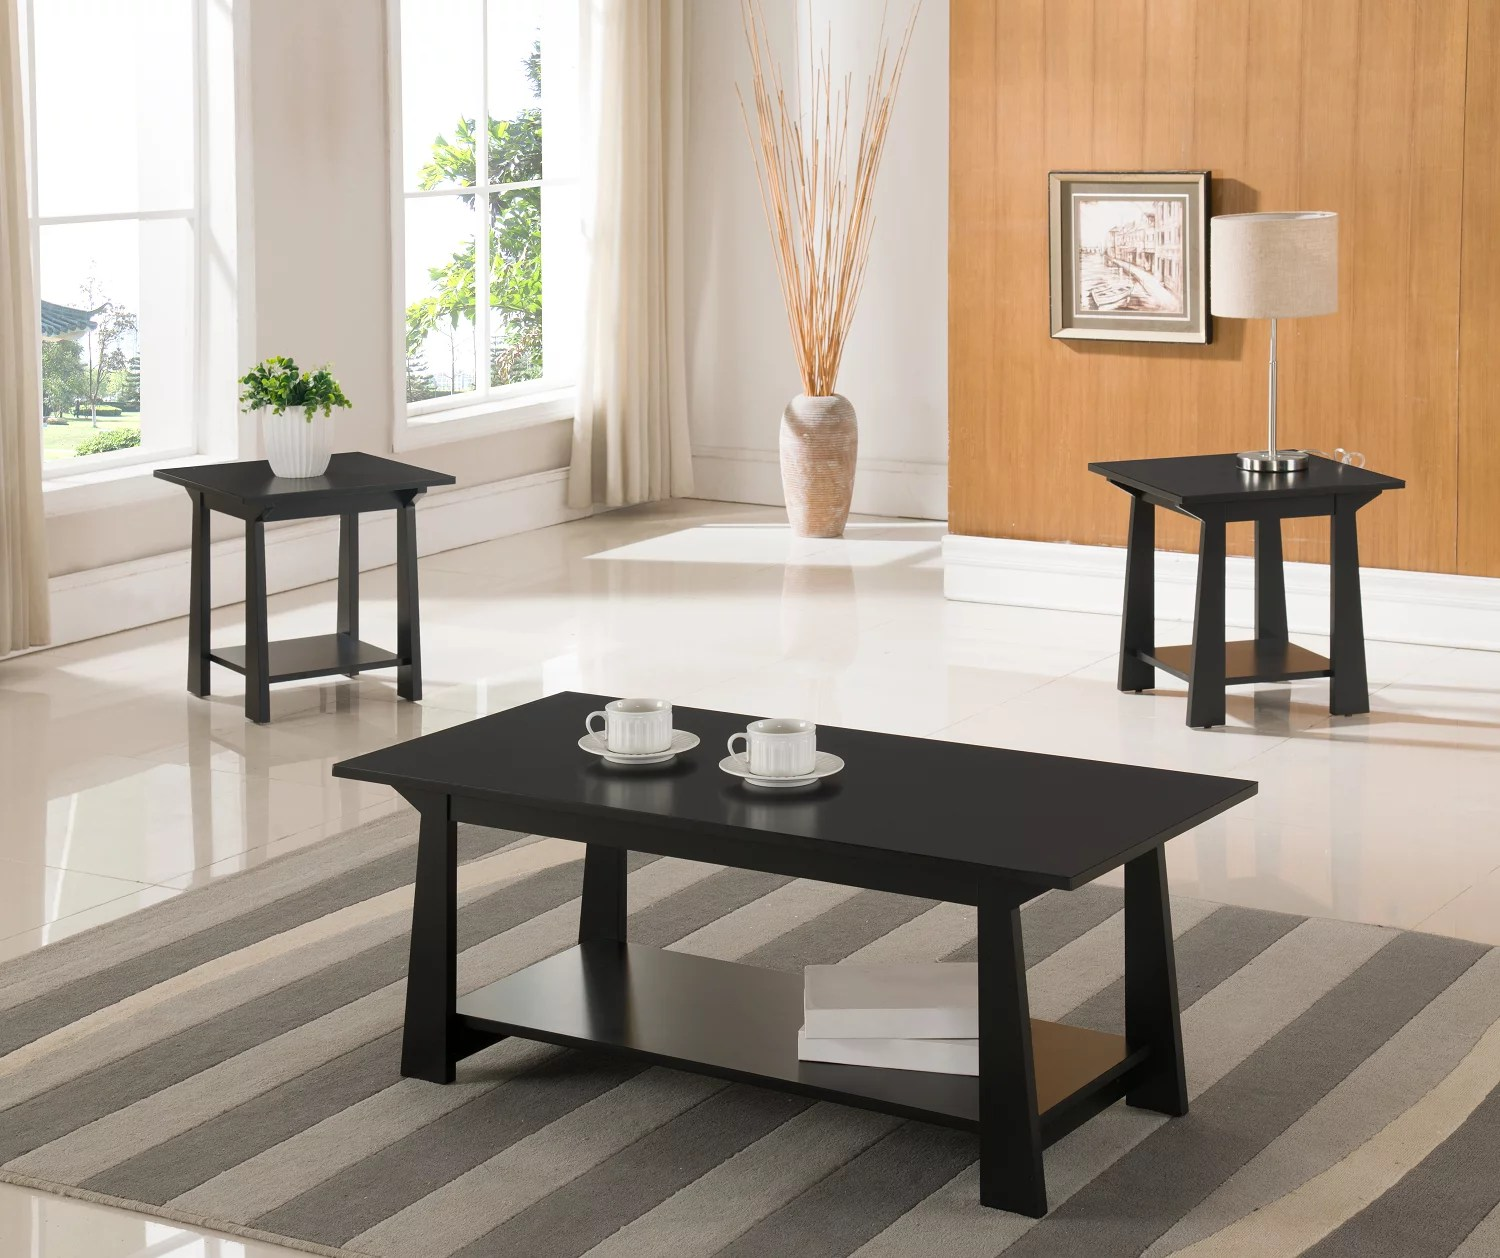 sally 3 piece coffee table set black wood with storage shelves contemporary cocktail coffee 2 end tables walmart com